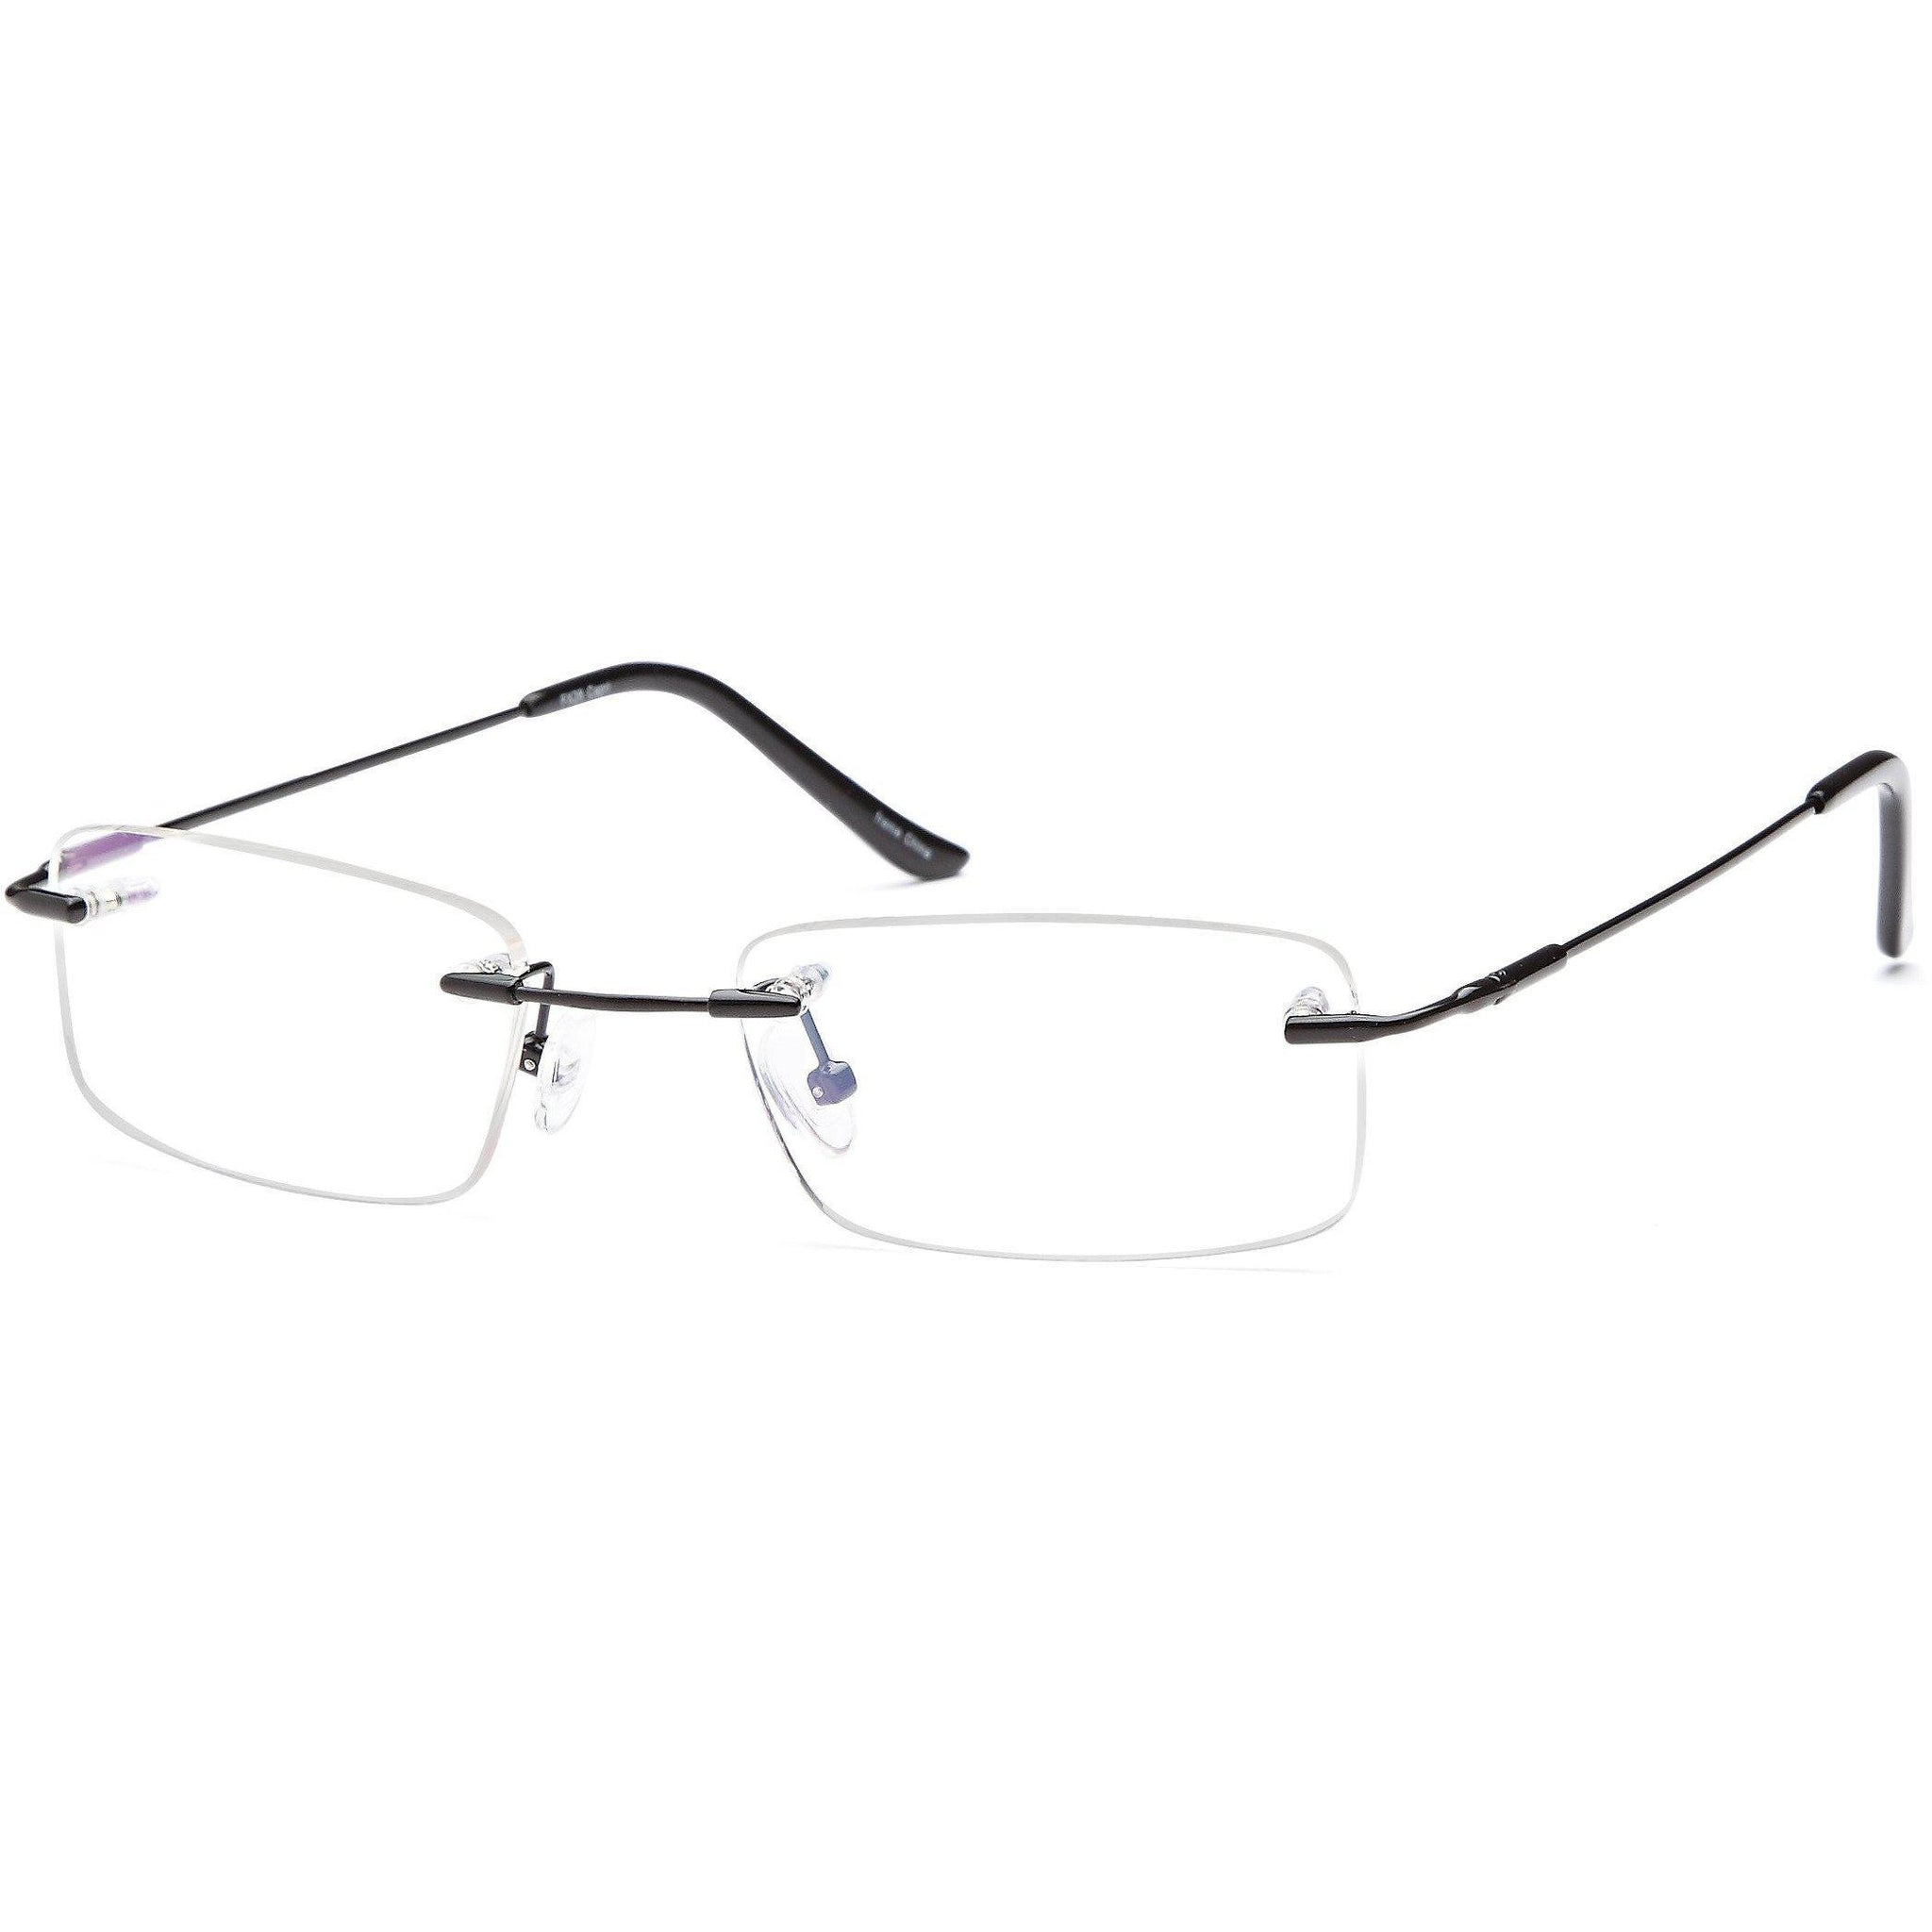 Titanium Prescription Glasses FX 26 Eyeglasses Frame